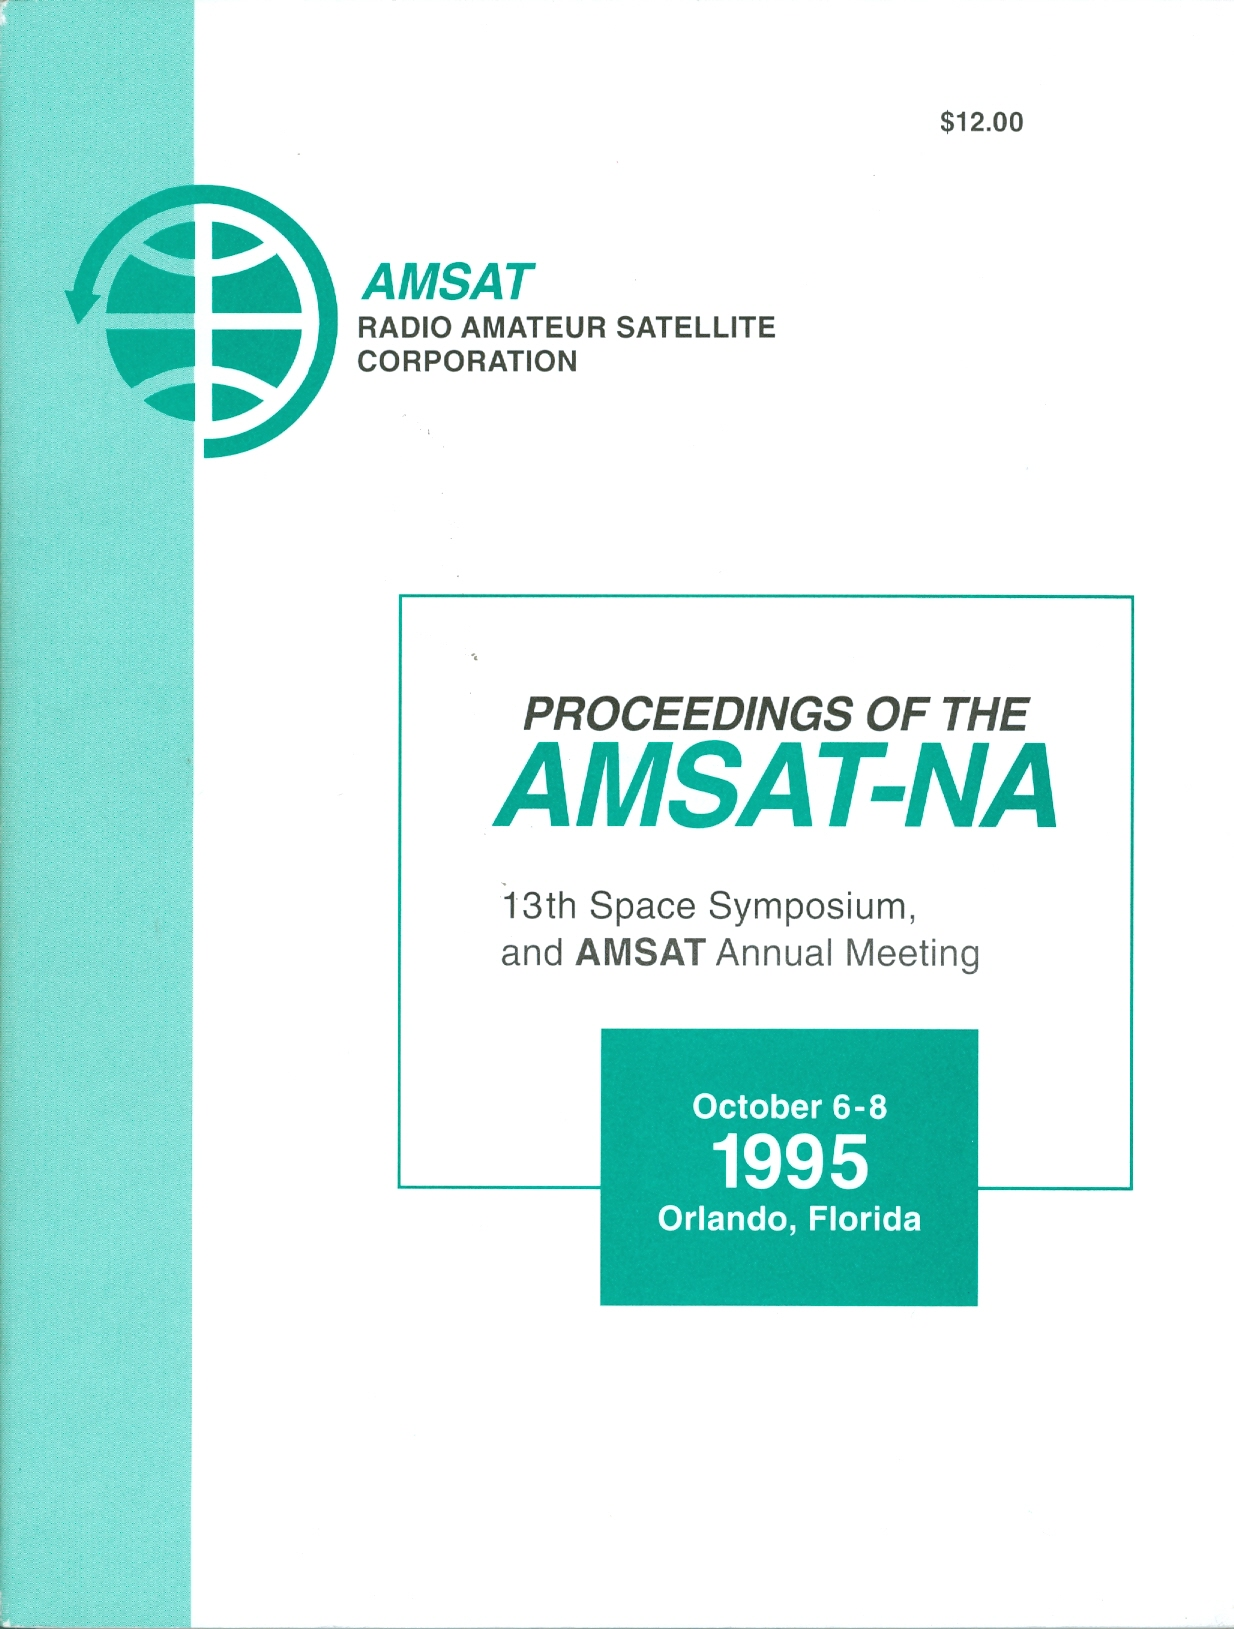 Proceedings of the AMSAT-NA 13th Space Symposium, and AMSAT Annual Meeting, October 6-8, 1995, Orlando, Florida.